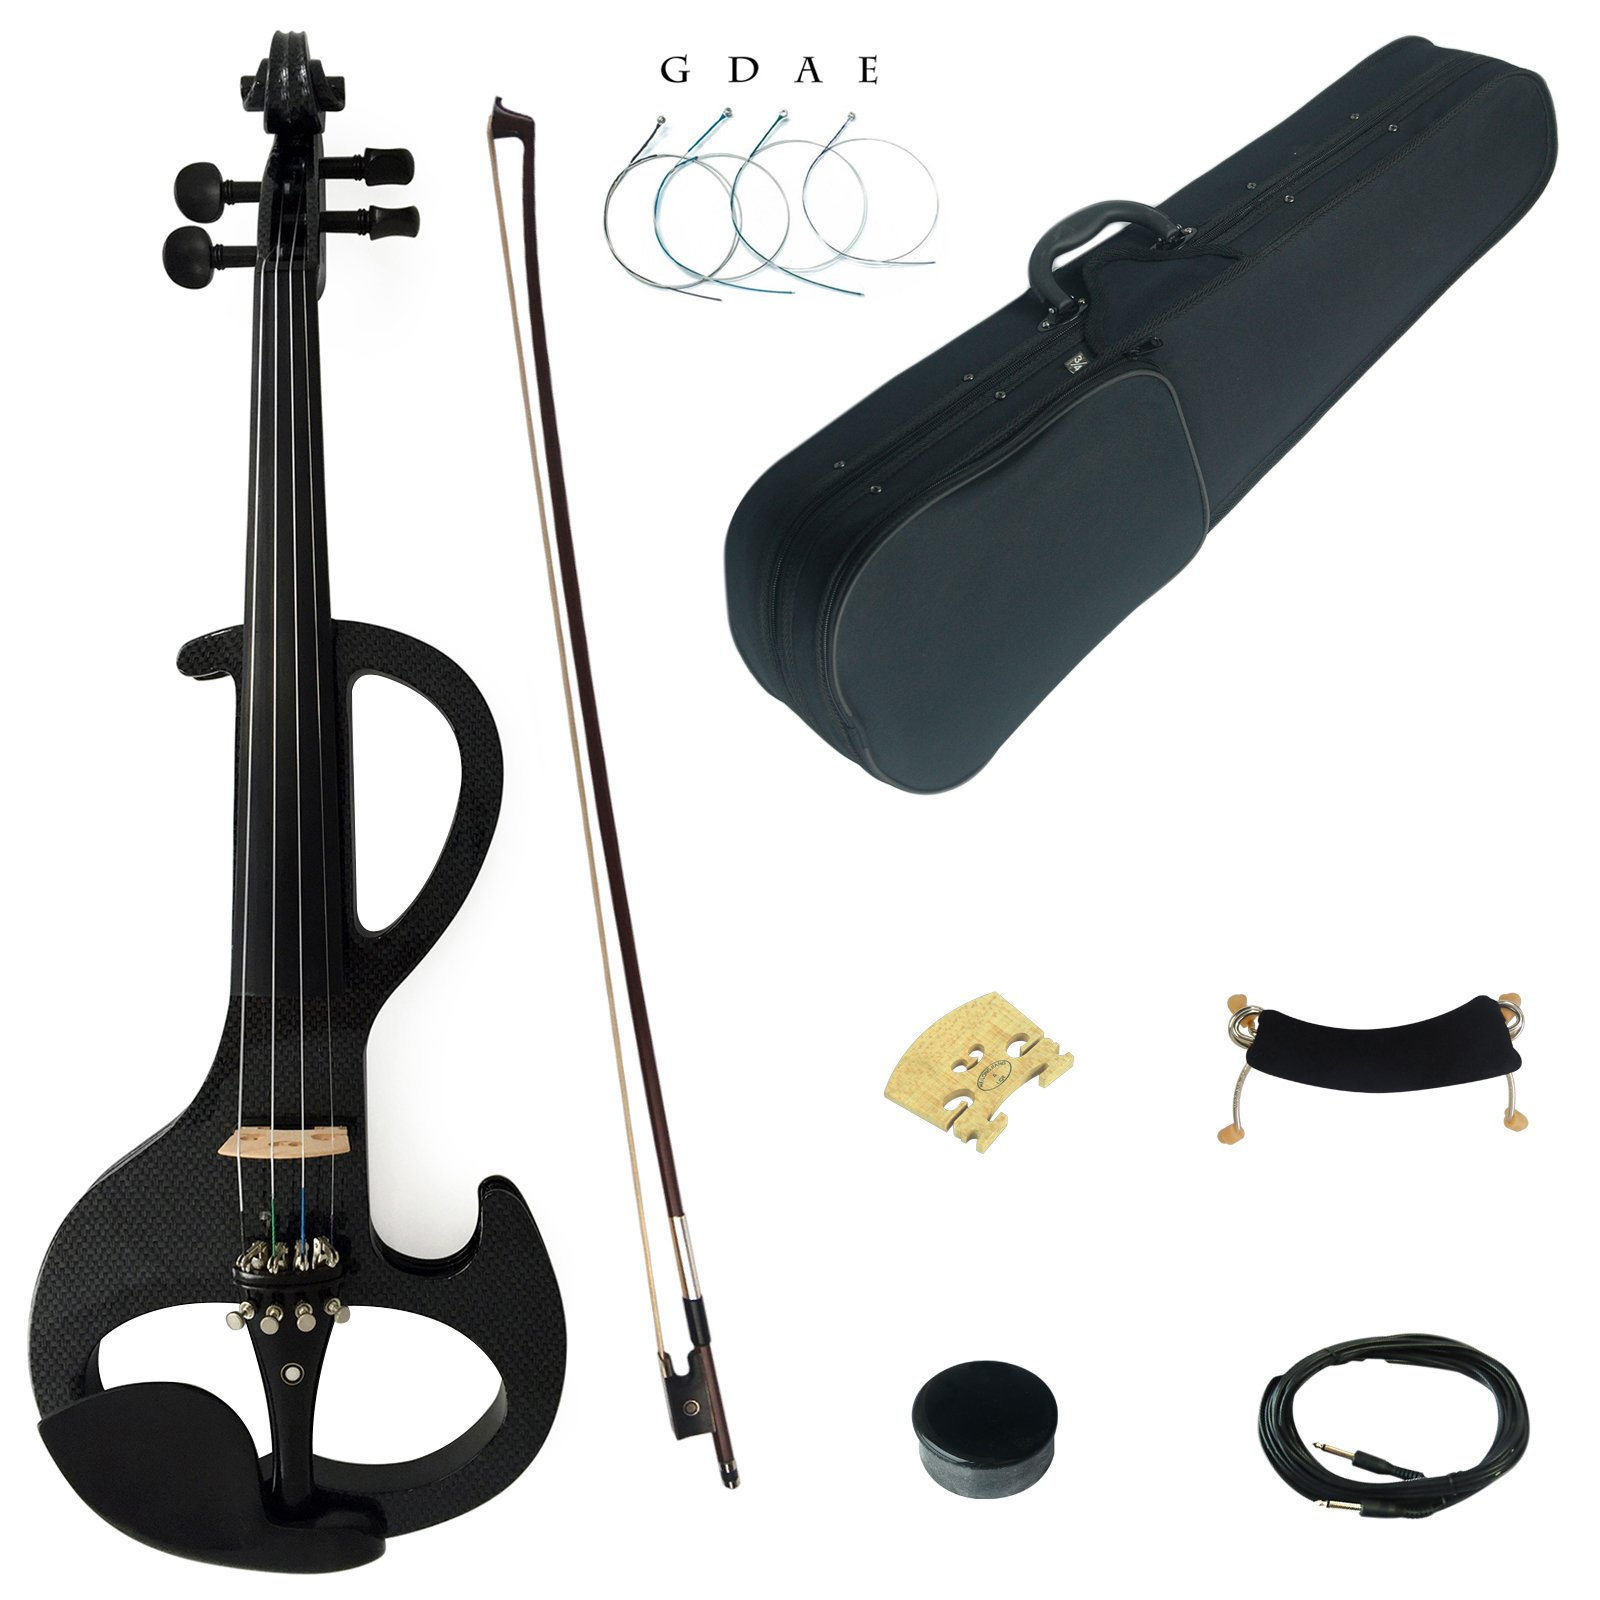 Kinglos 4/4 Black Grid Colored Solid Wood Intermediate-A Electric / Silent Violin Kit with Ebony Fittings Full Size (DSZA1311) by Kinglos